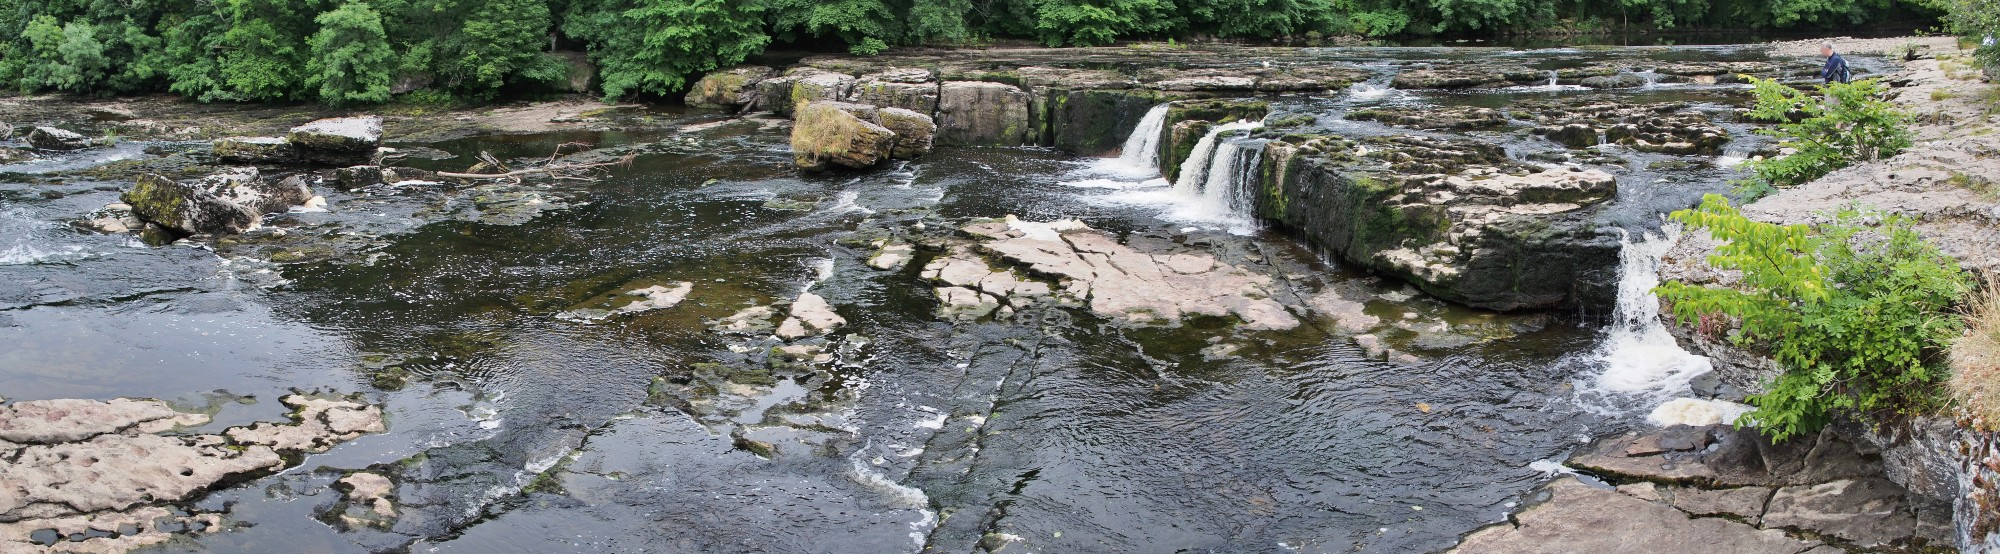 Aysgarth Falls Upper Falls panoramic view